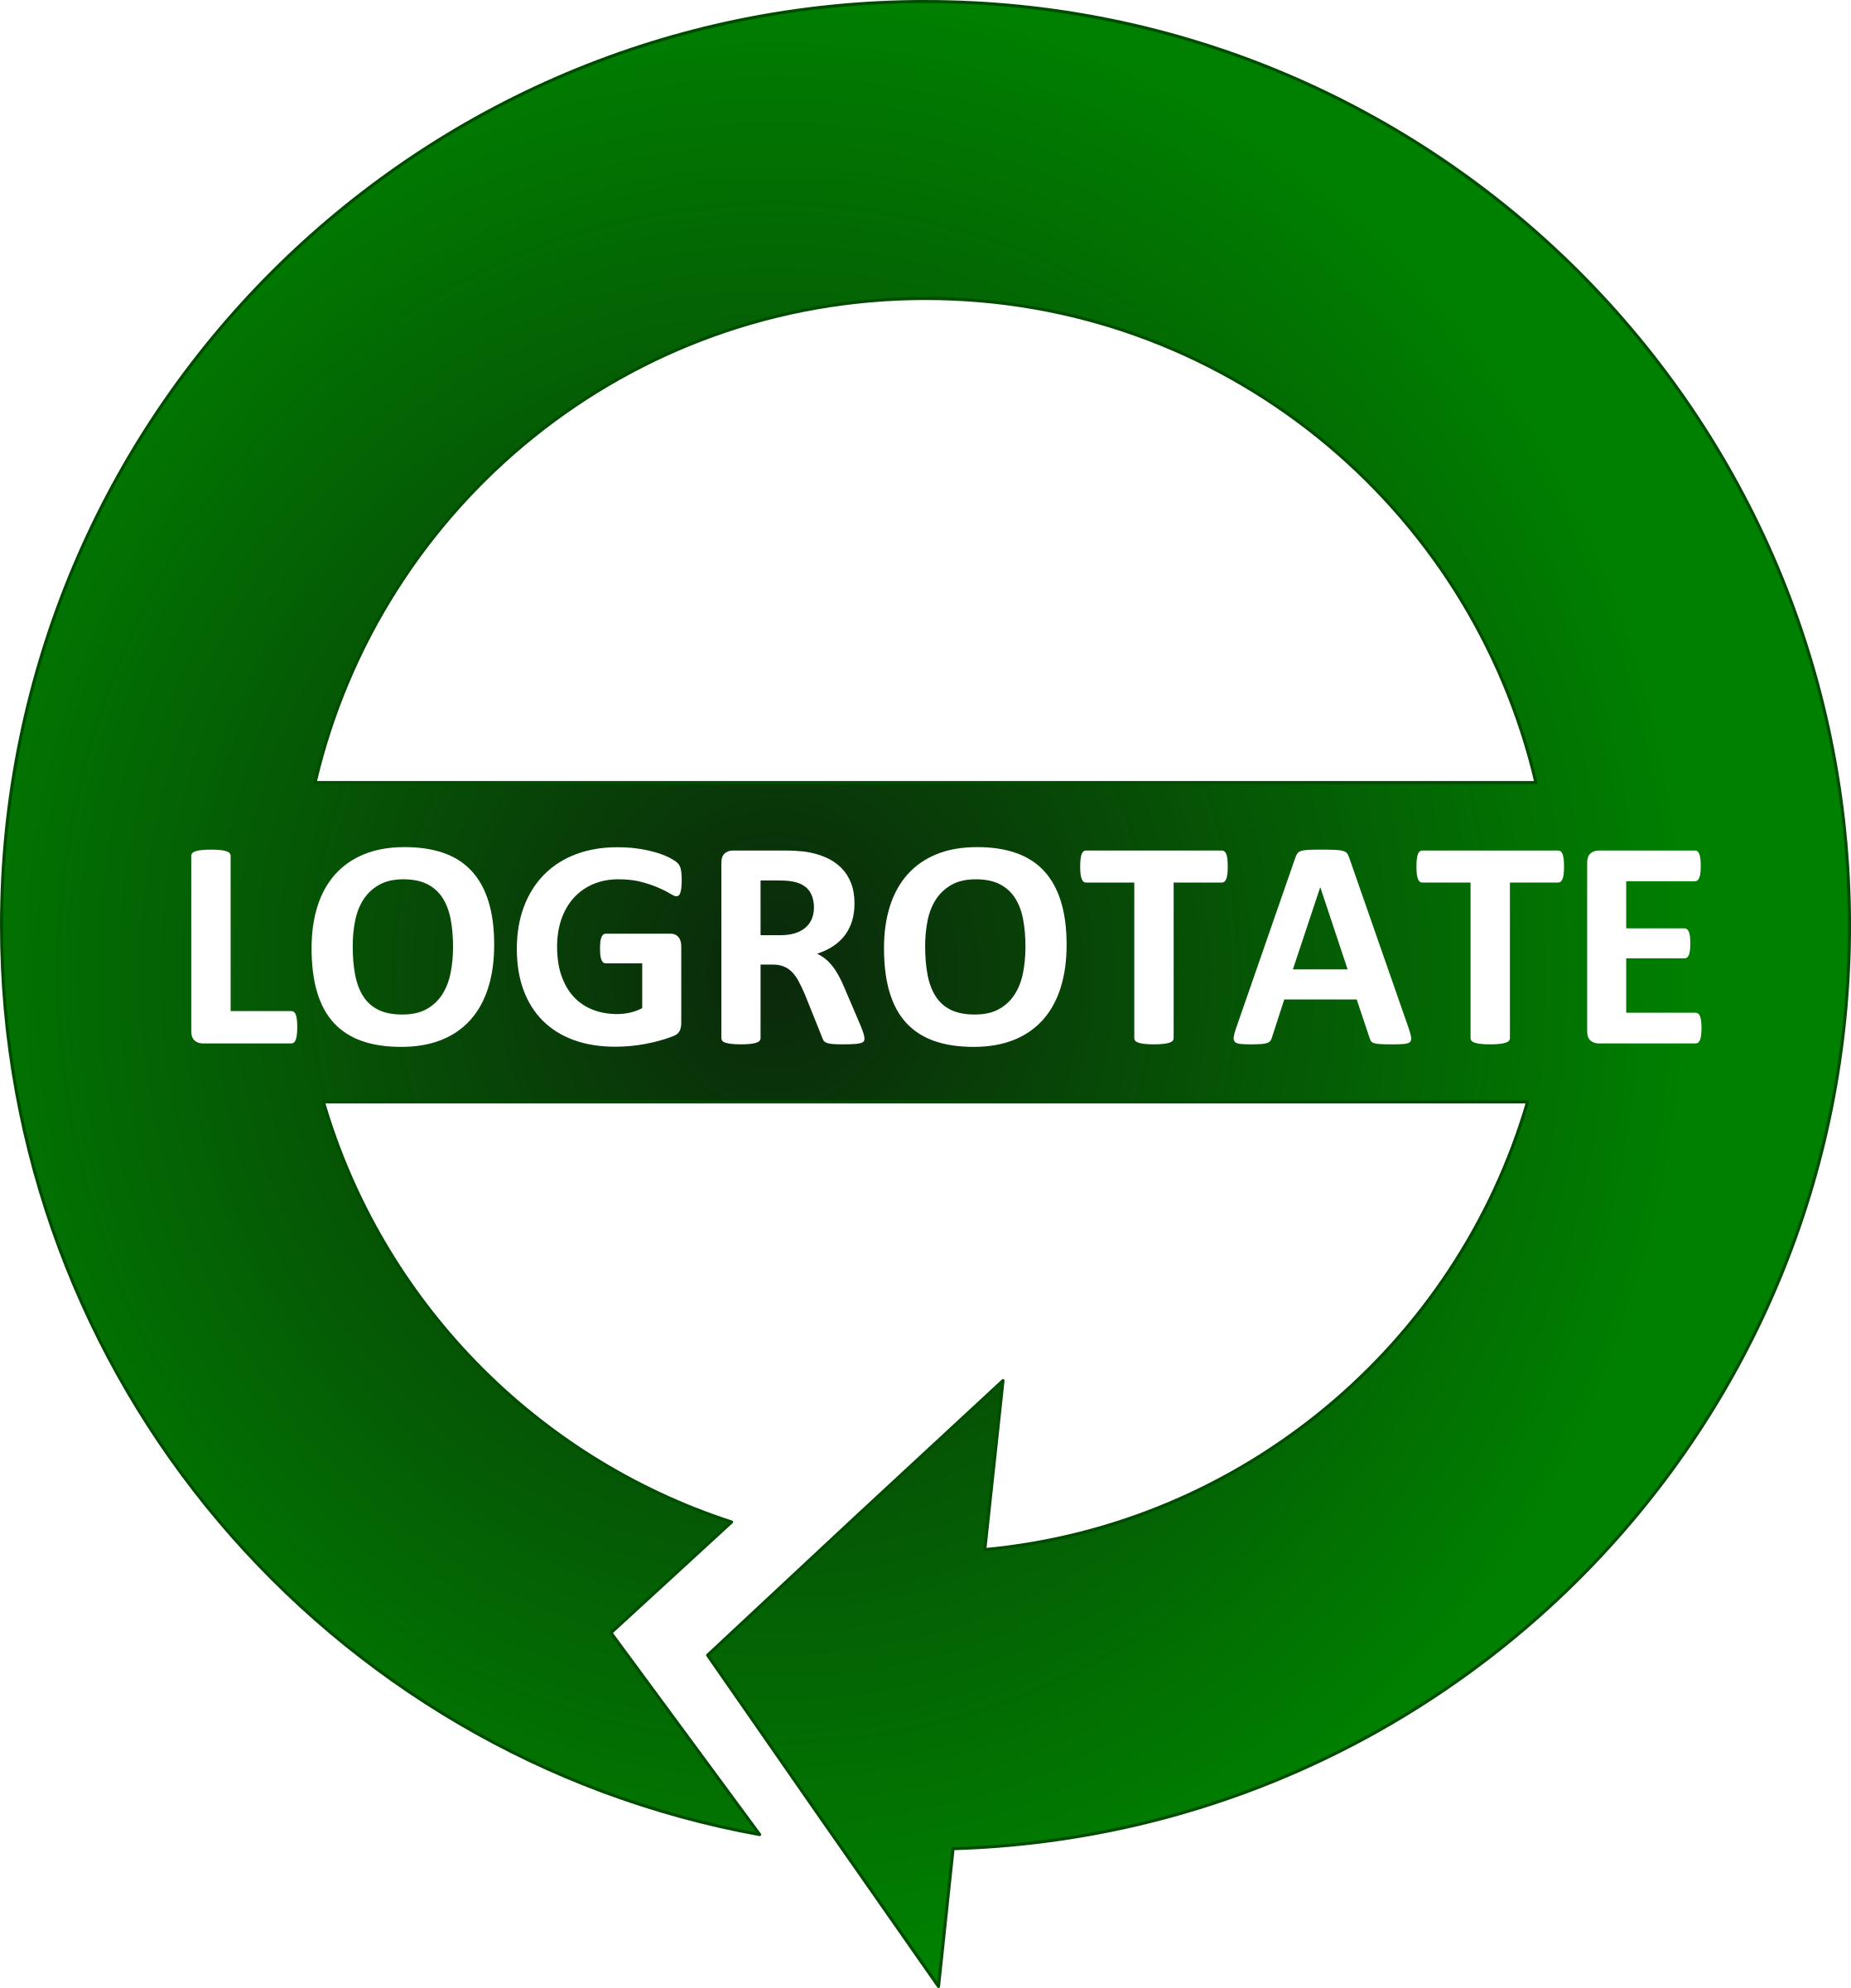 LogrotateWin : un Logrotate pour Windows